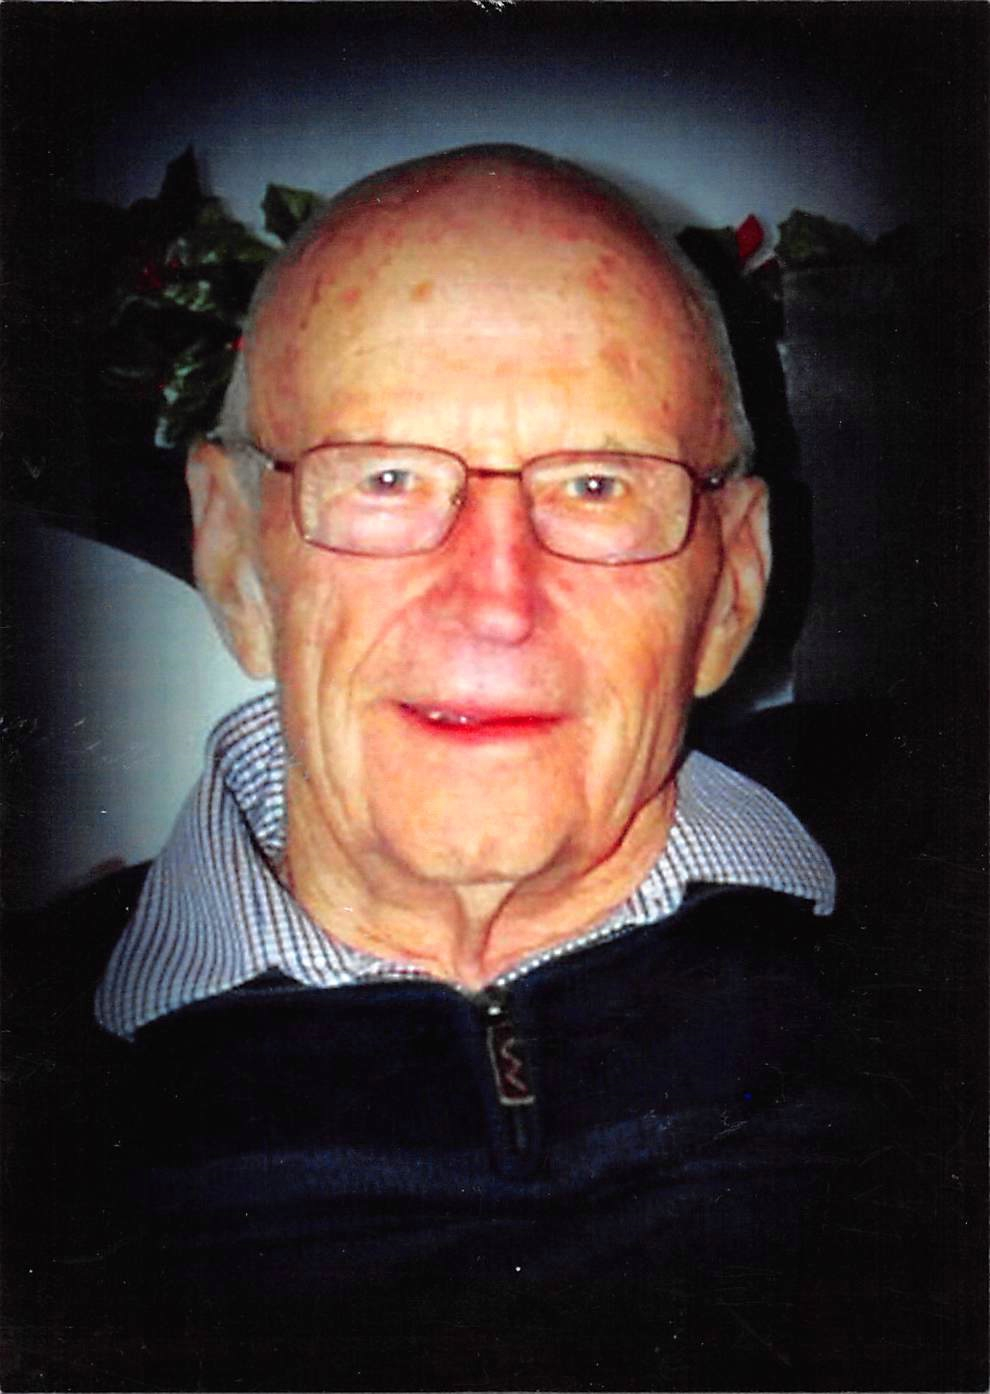 Local Obituaries From Kltz In Glasgow Montana Testimonial Arthur Aten Nevada State Trooper Lyle Walstad 85 Of Opheim Mt Passed Away On June 13 2018 At Valley View Nursing Home Alzheimers Disease He Was Born May 26